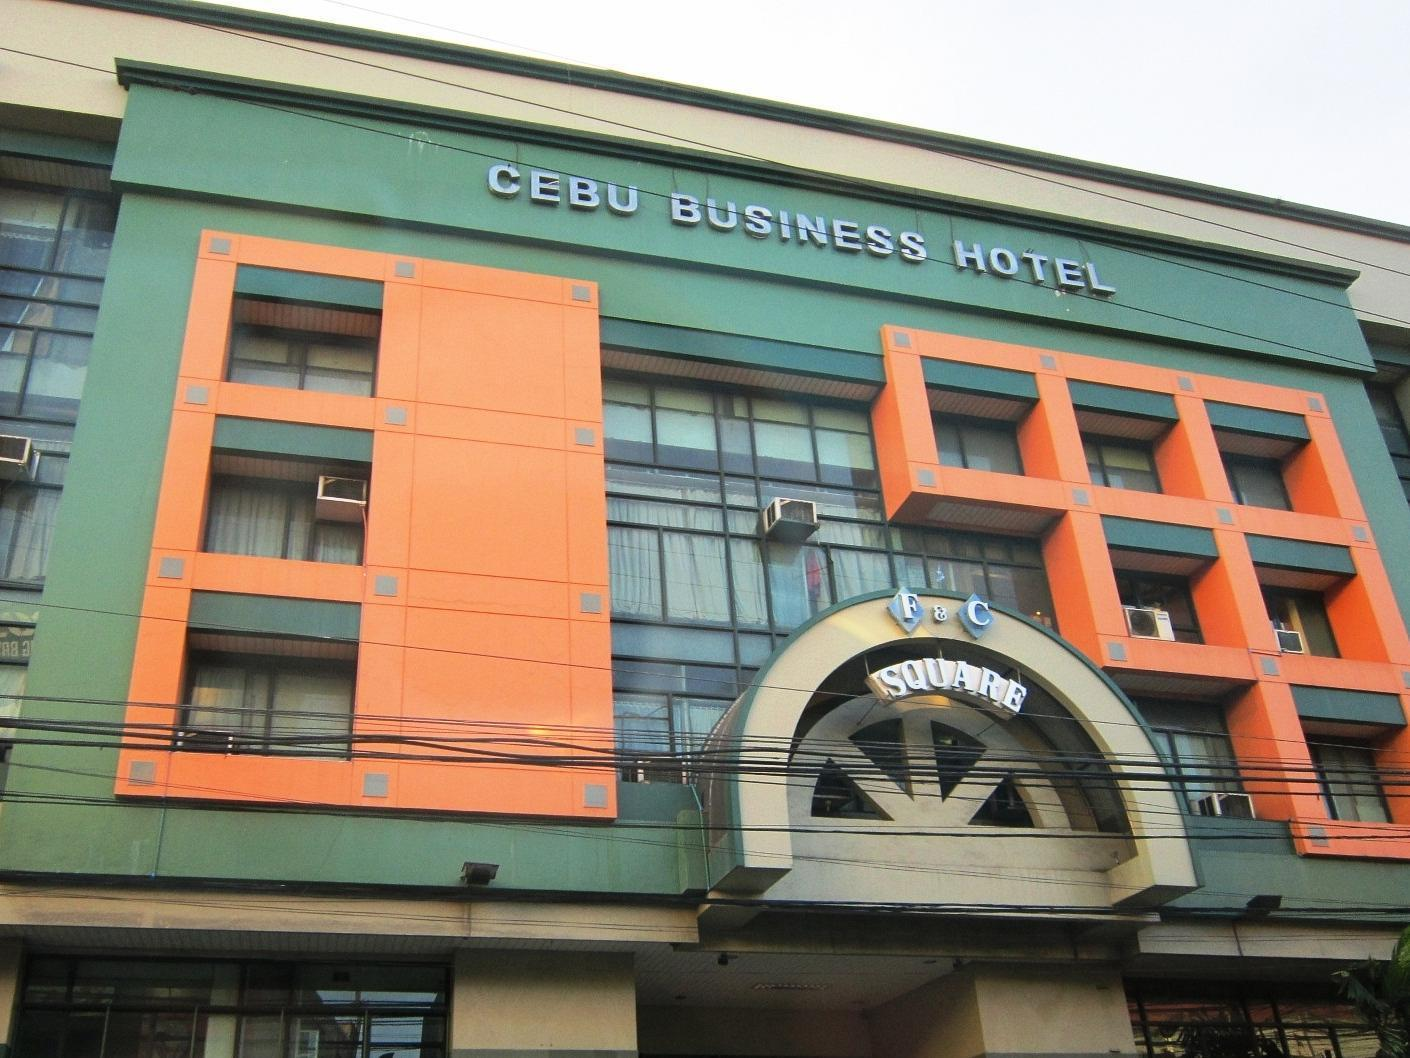 Cebu Business Hotel Cebu - Tampilan Luar Hotel